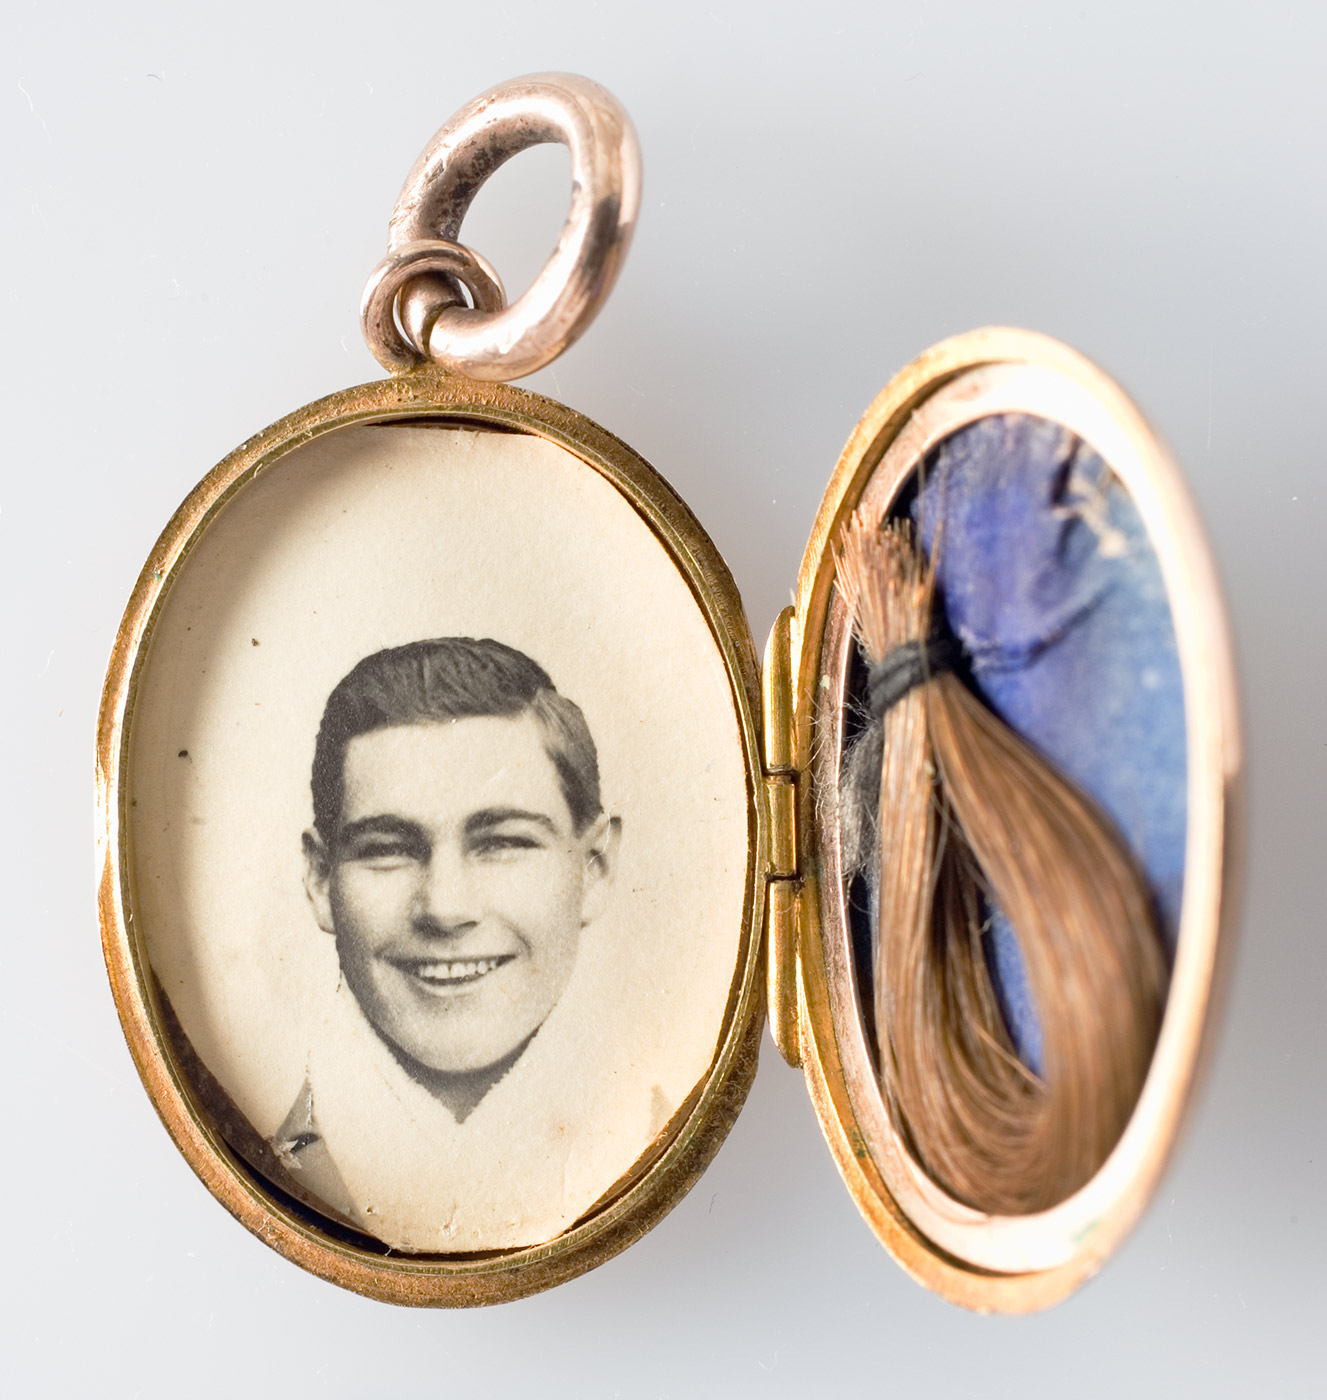 Images of the mourning locket, open and revealing a photo of Les Darcy (on left) and a lock of his hair on a blue background (on right).